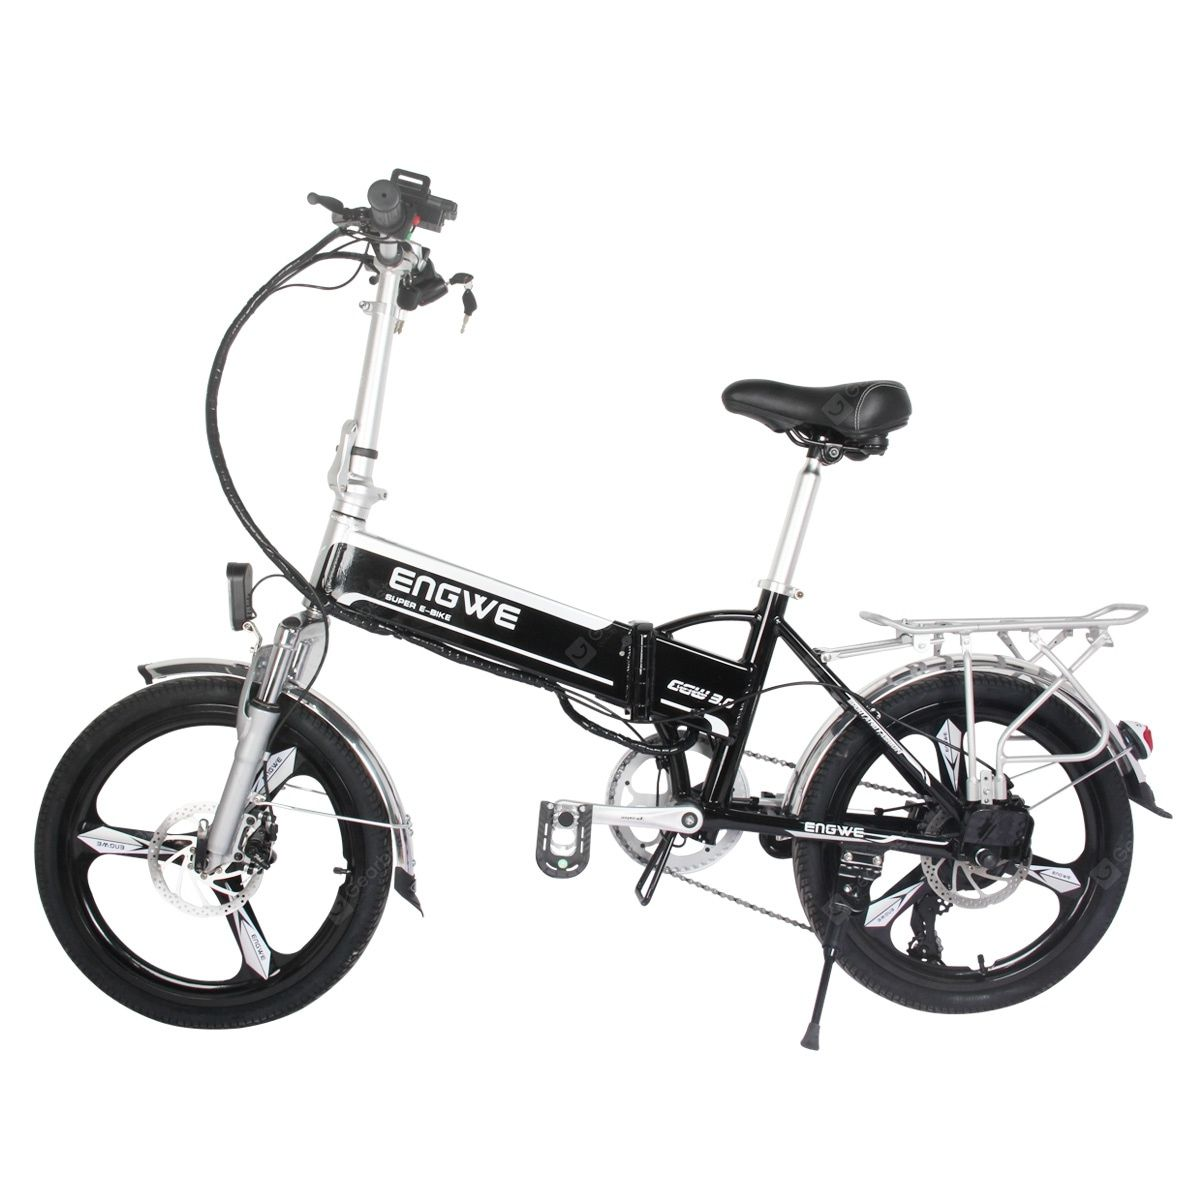 Pin By P On E Bike Electric Bike Electric Bike Bicycles Folding Electric Bike